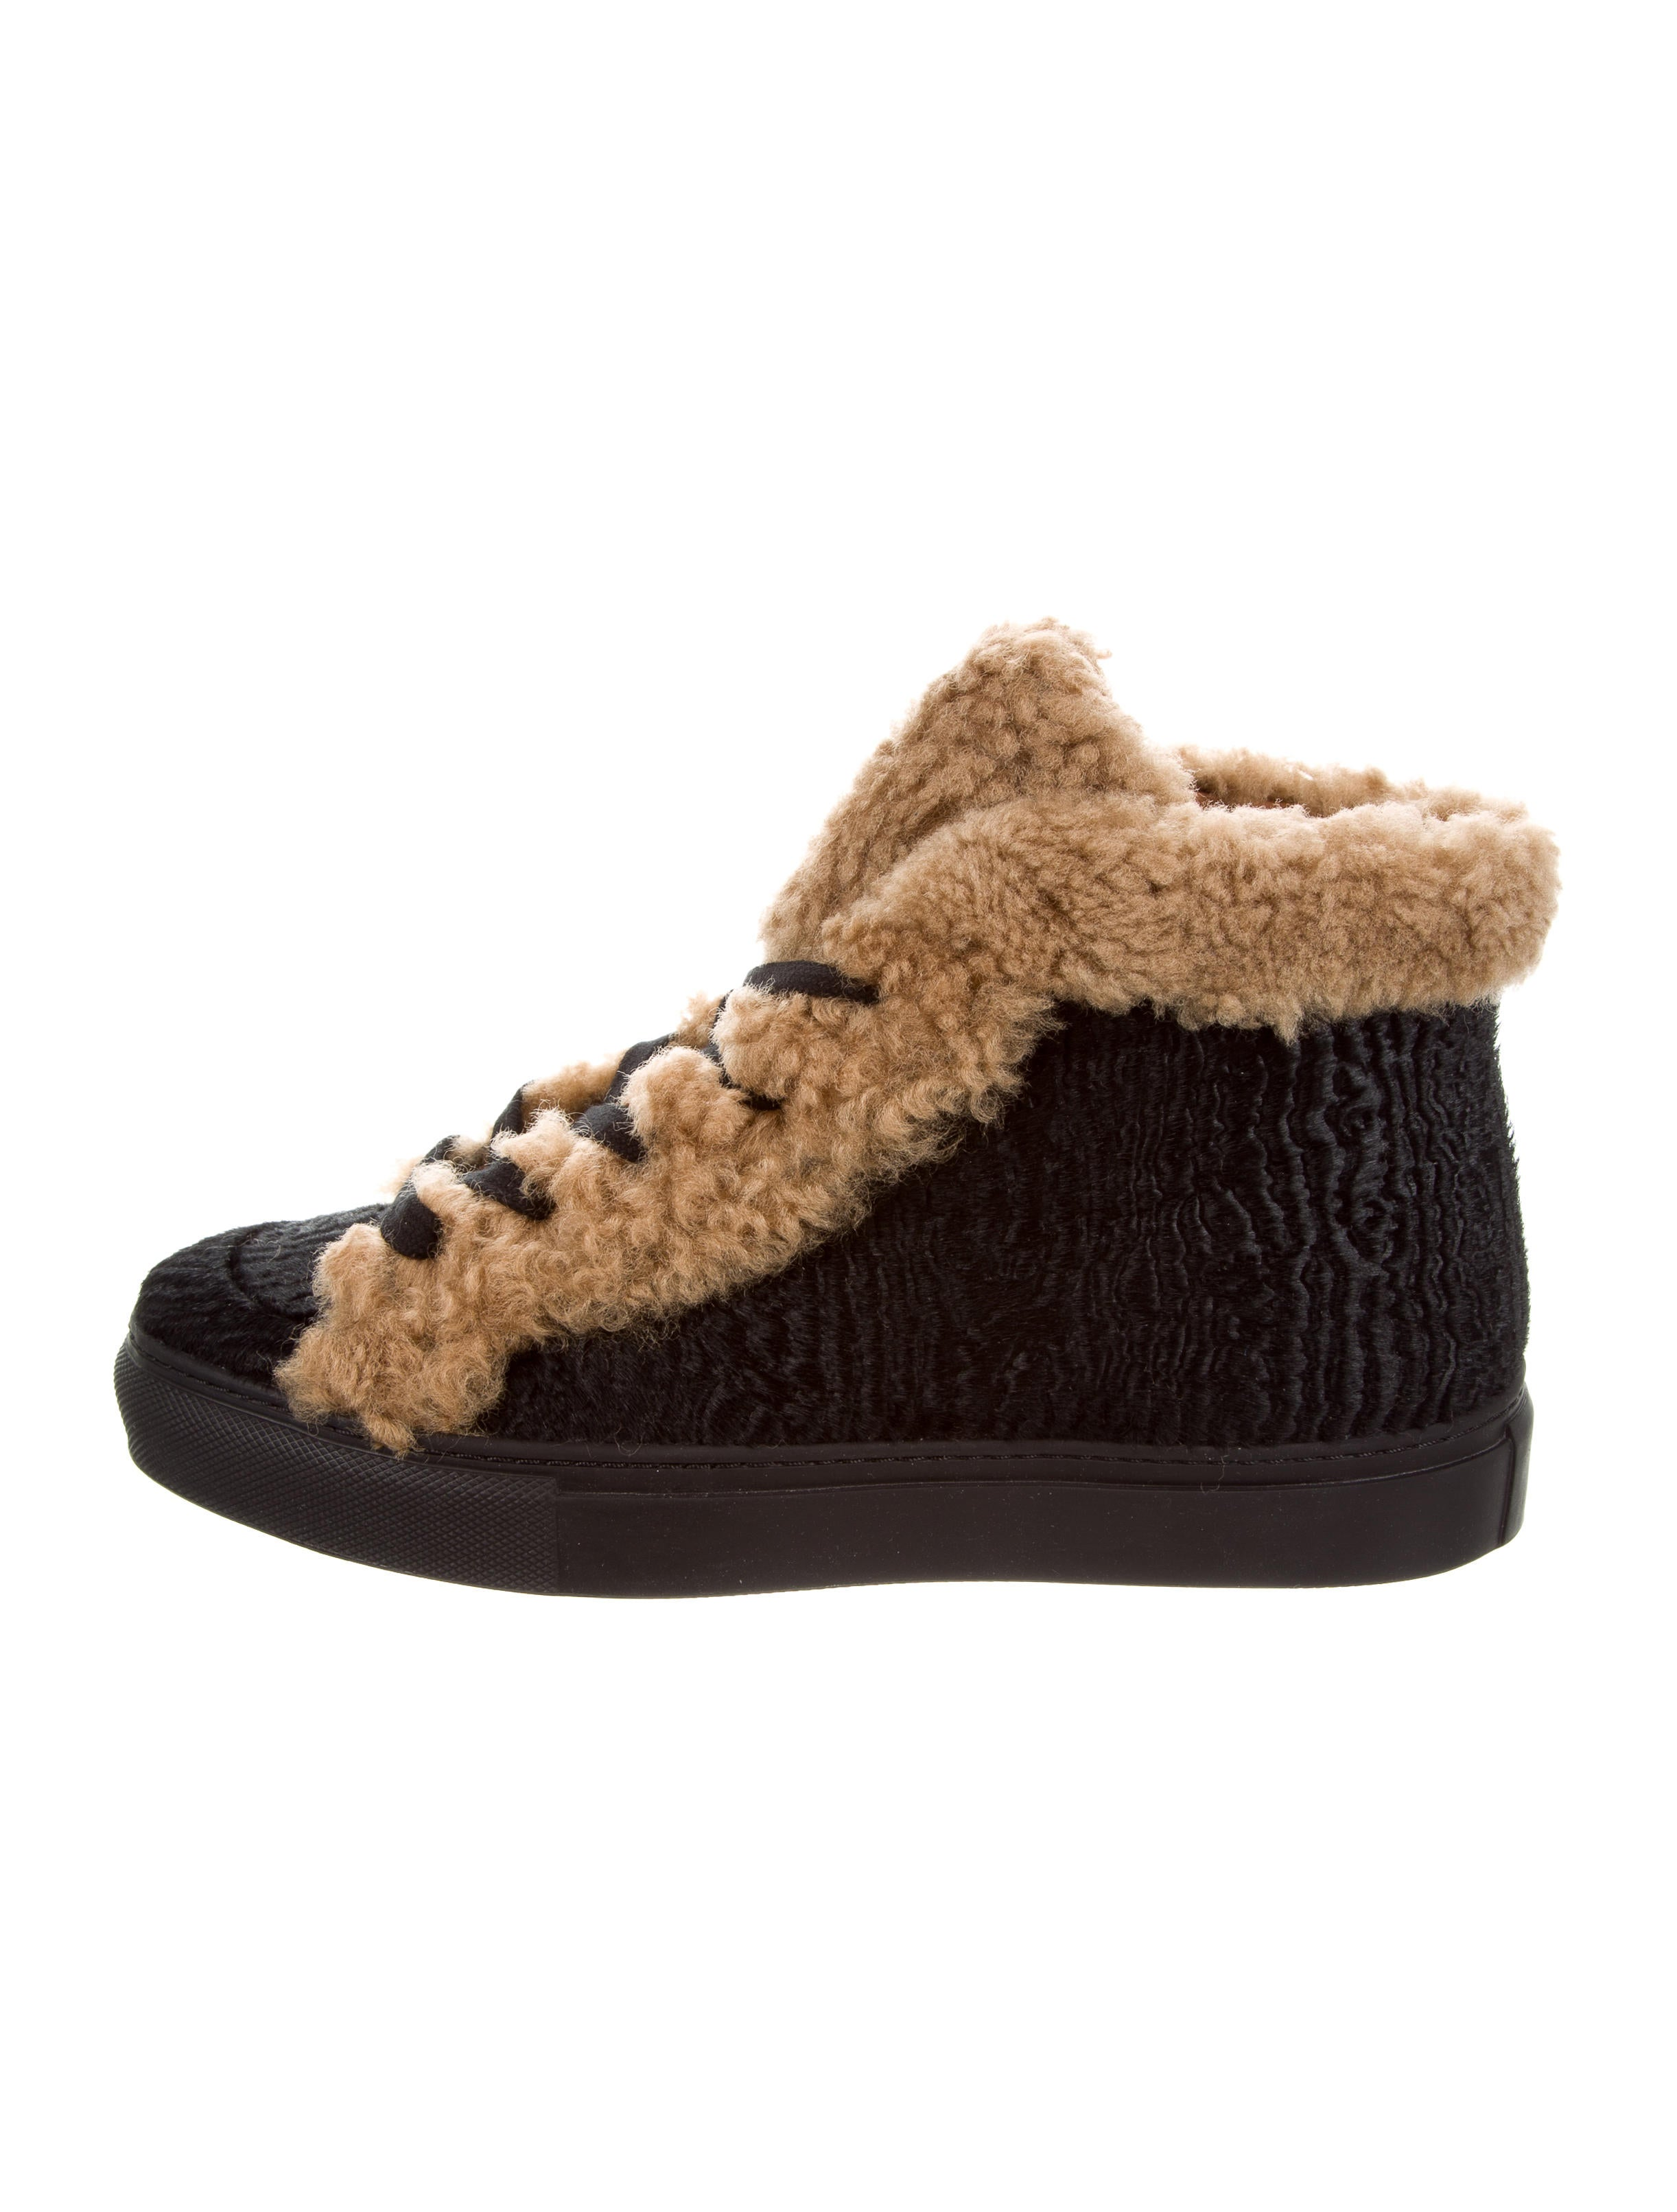 Laurence Dacade Hugh Ponyhair High-Top Sneakers free shipping view newest for sale sale pictures u6a9eoFyDO